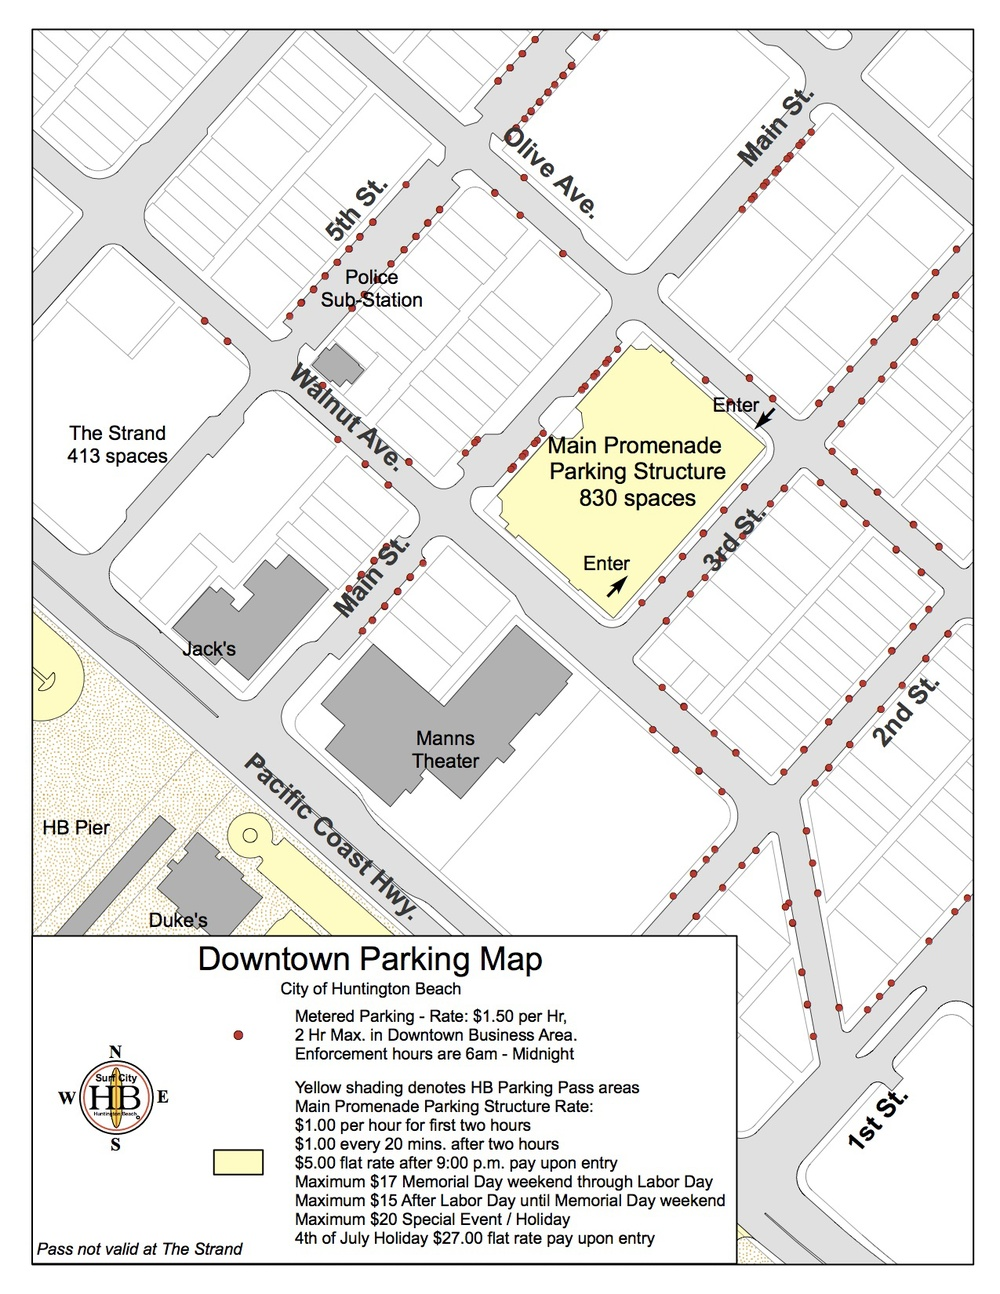 (Parking map courtesy of the City of Huntington Beach)